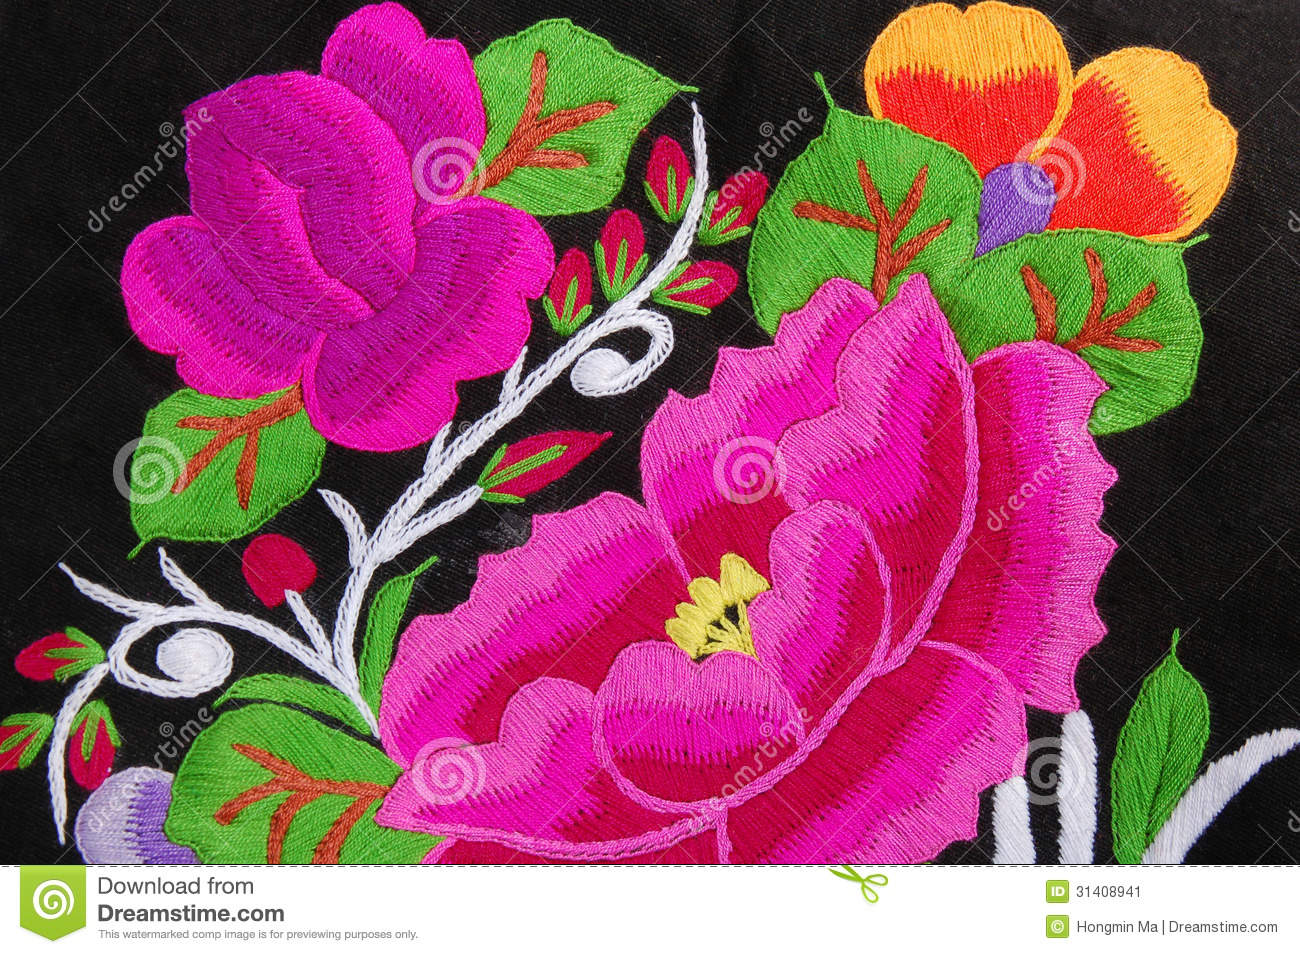 Flower Hand Embroidery Designs Free Download: A Traditional Hand Embroidery Floral Stock Image